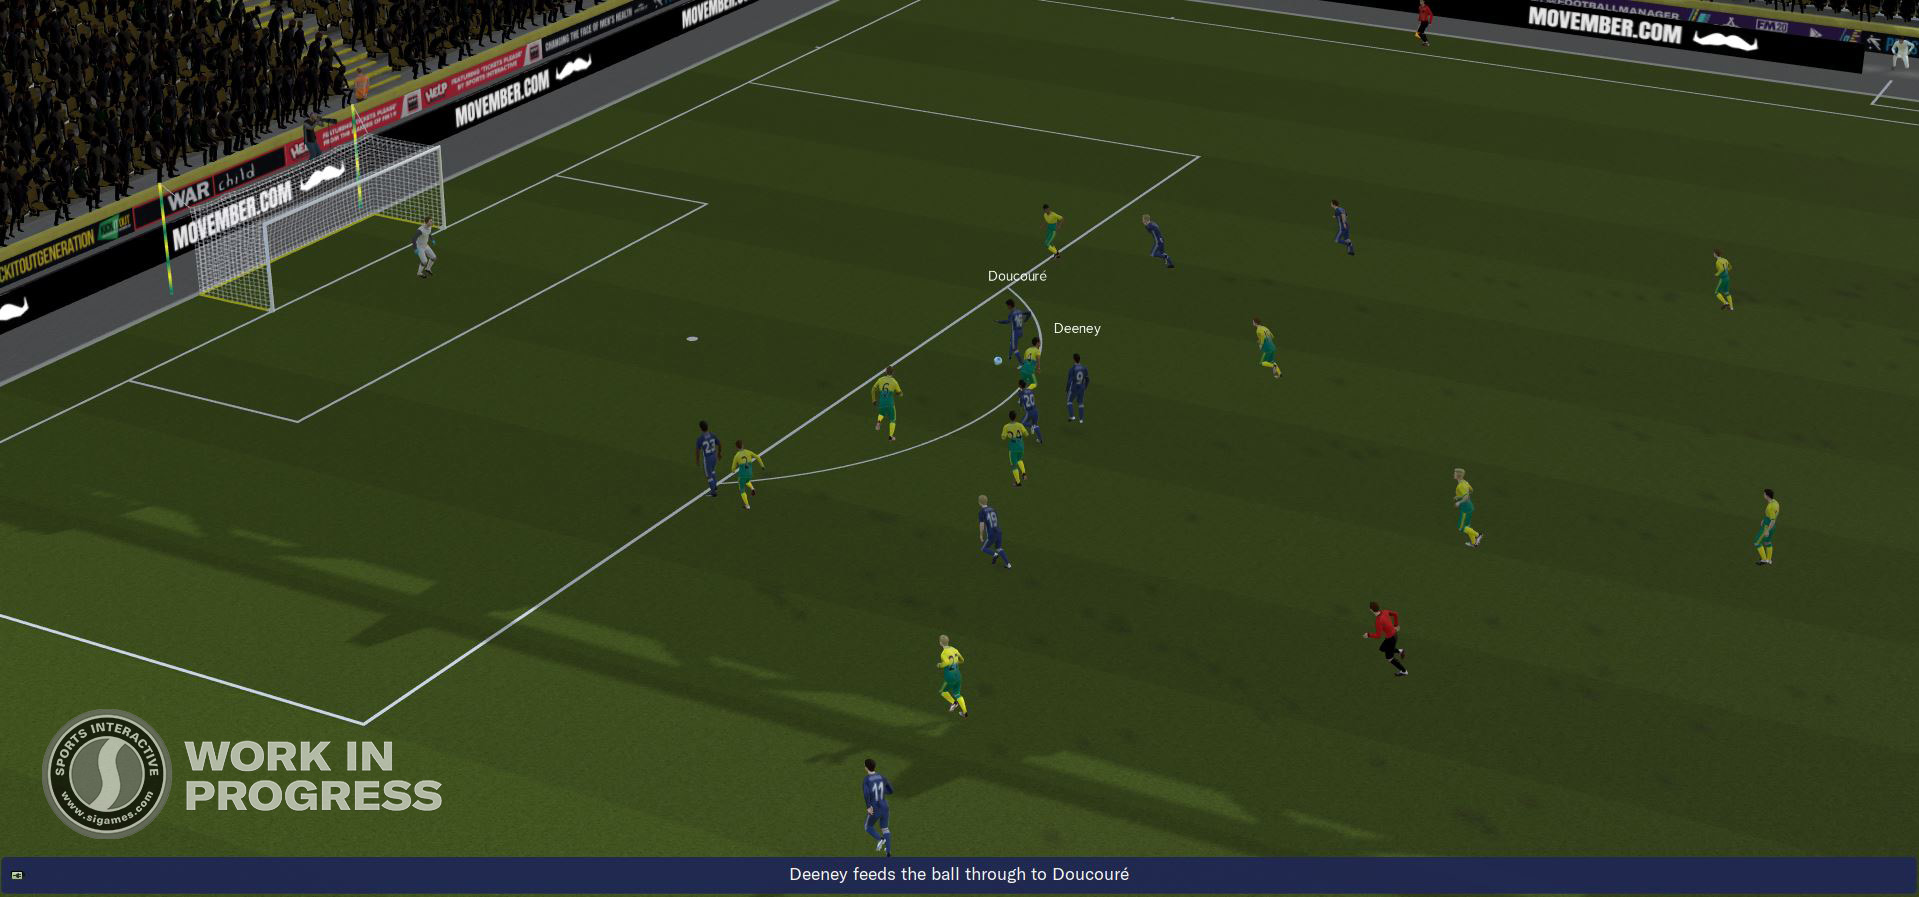 attacking movement